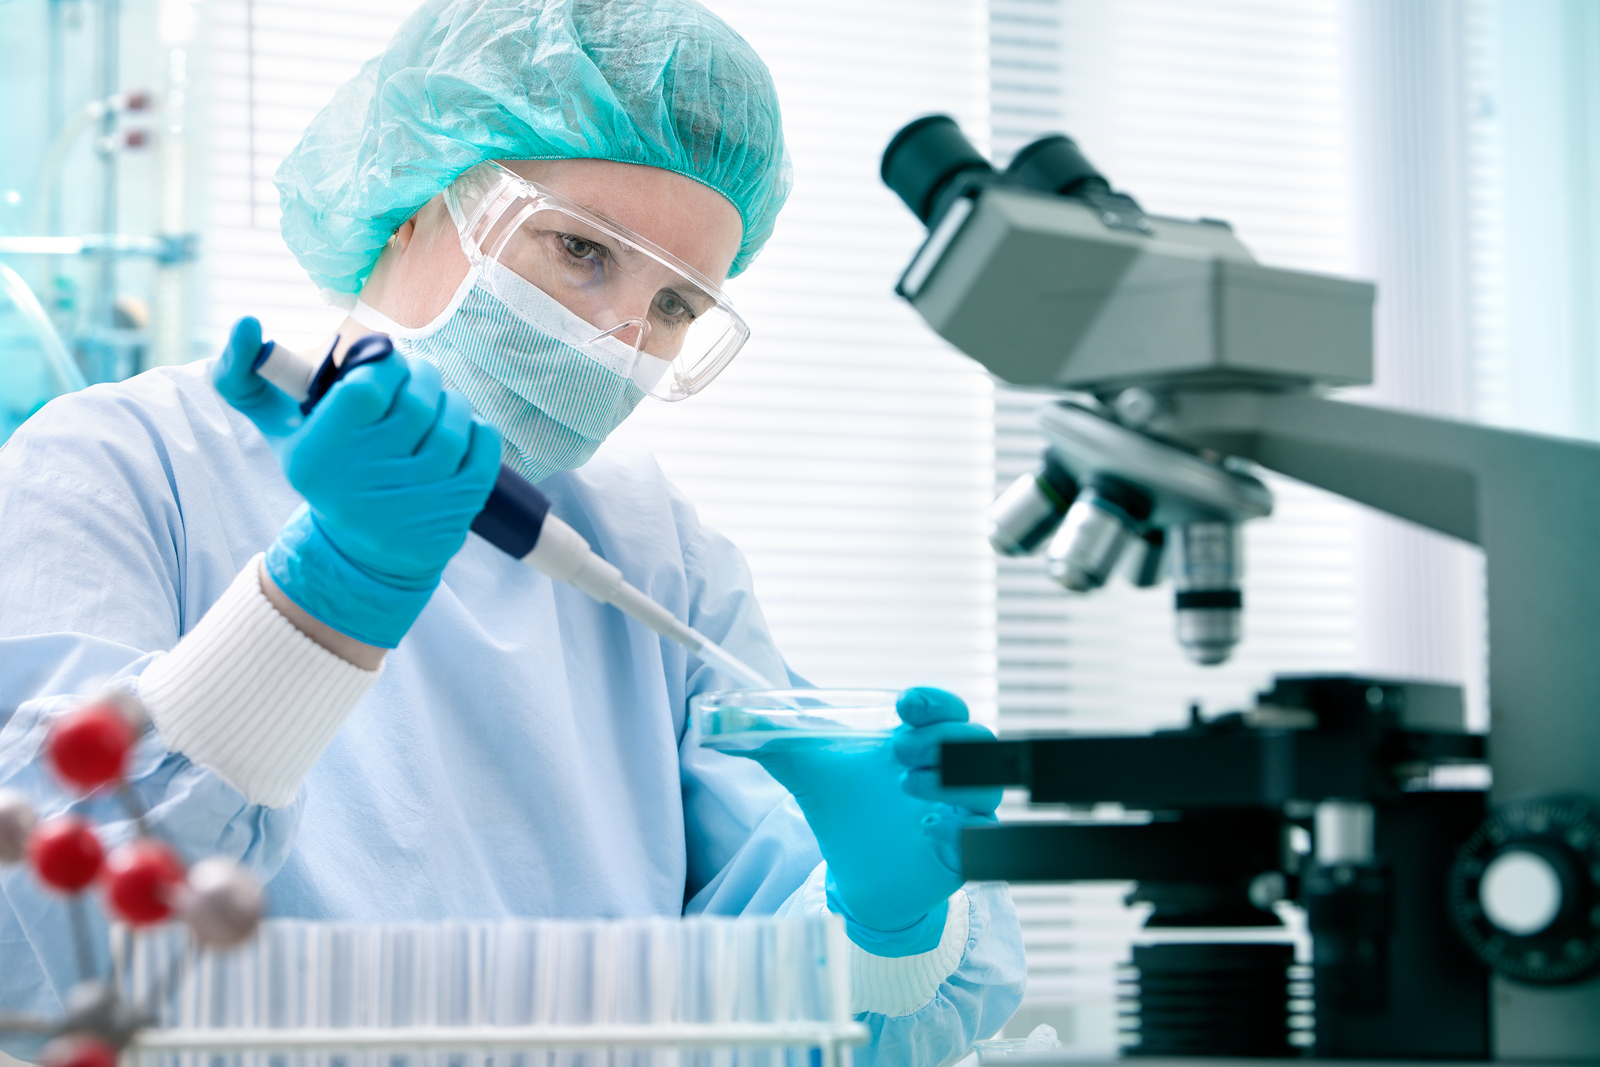 bigstock-scientist-working-at-the-labor-42055789.jpg